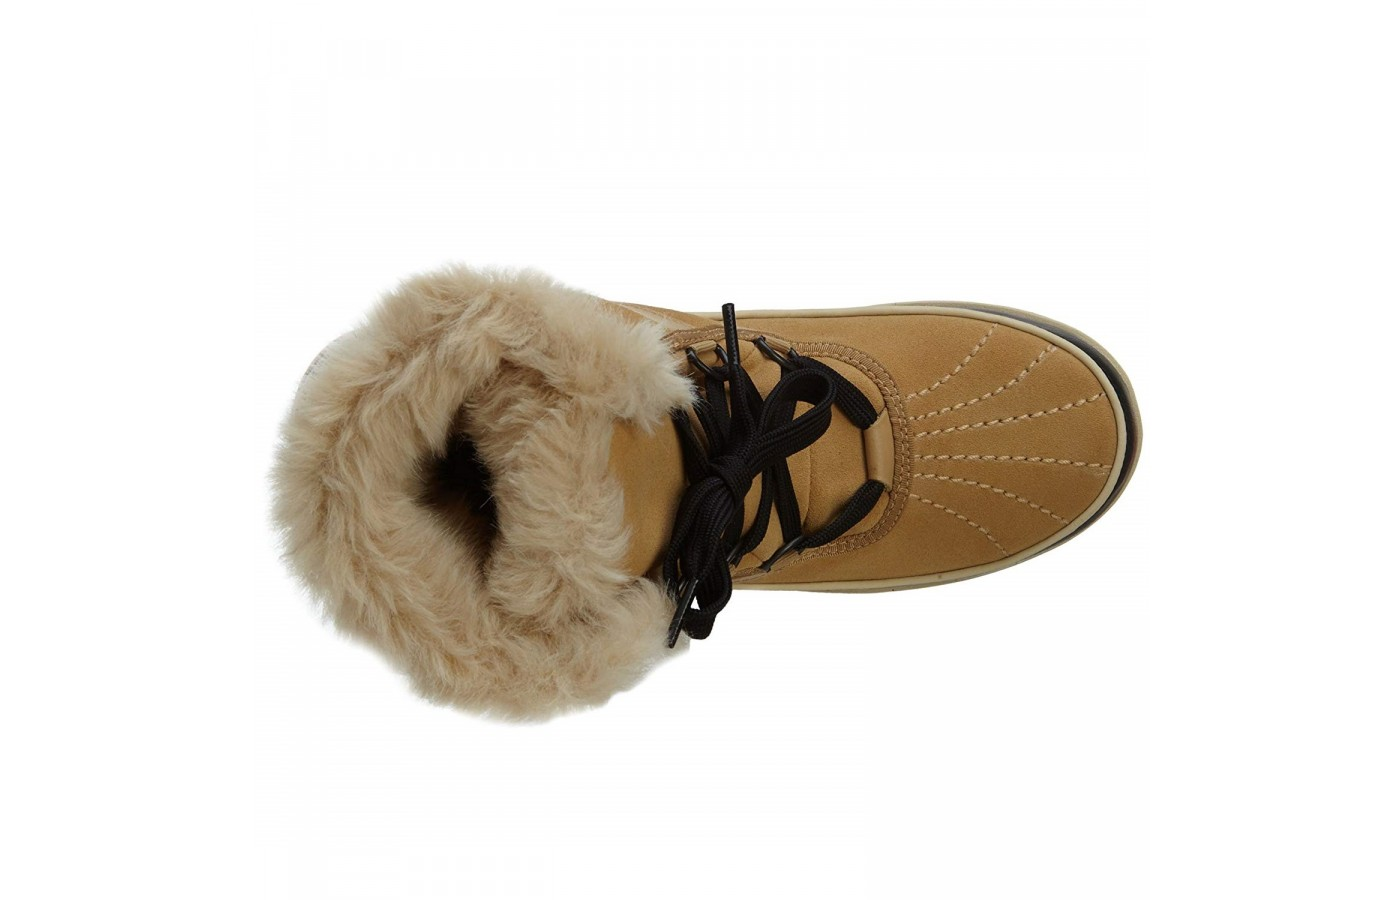 The Sorel Tivoli II also offers a real suede upper for breathability and style.